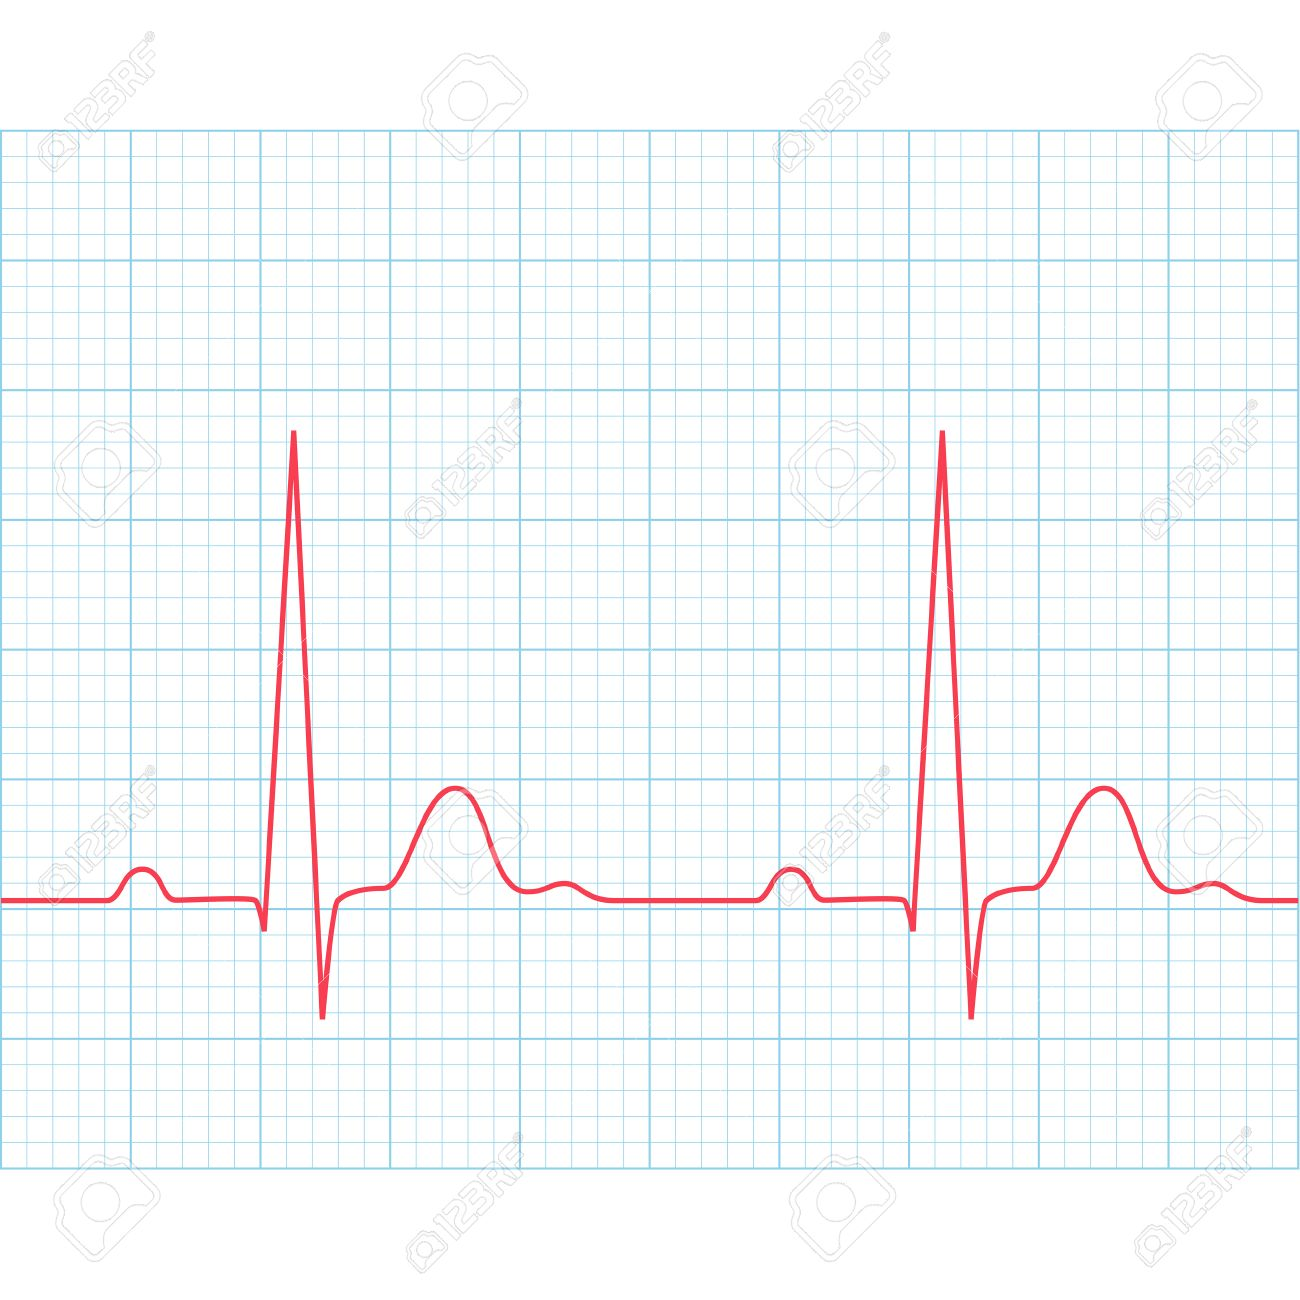 hight resolution of medical electrocardiogram ecg on grid paper graph of heart